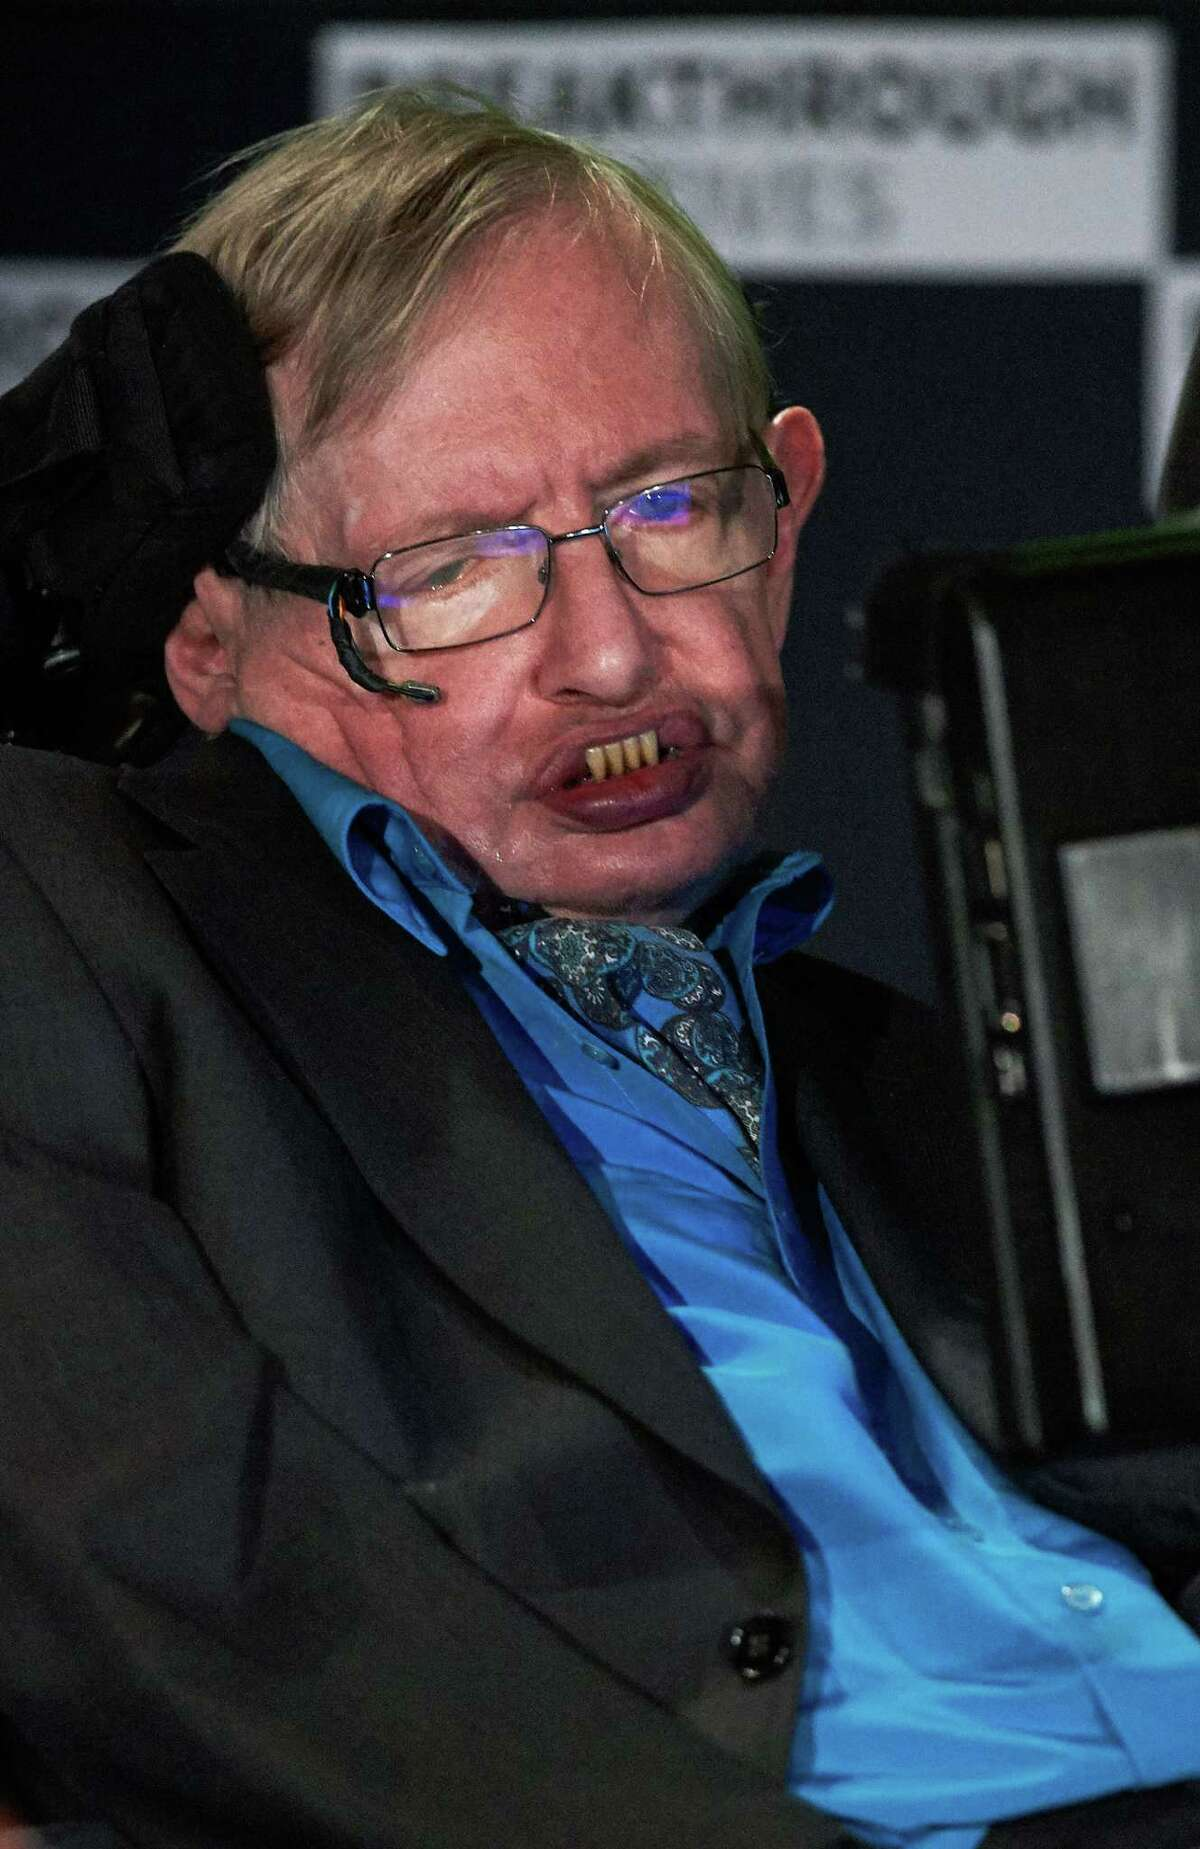 Scientist Stephen Hawking was a British theoretical physicist who contracted ALS shortly after he turned 21. He died in March 2018.